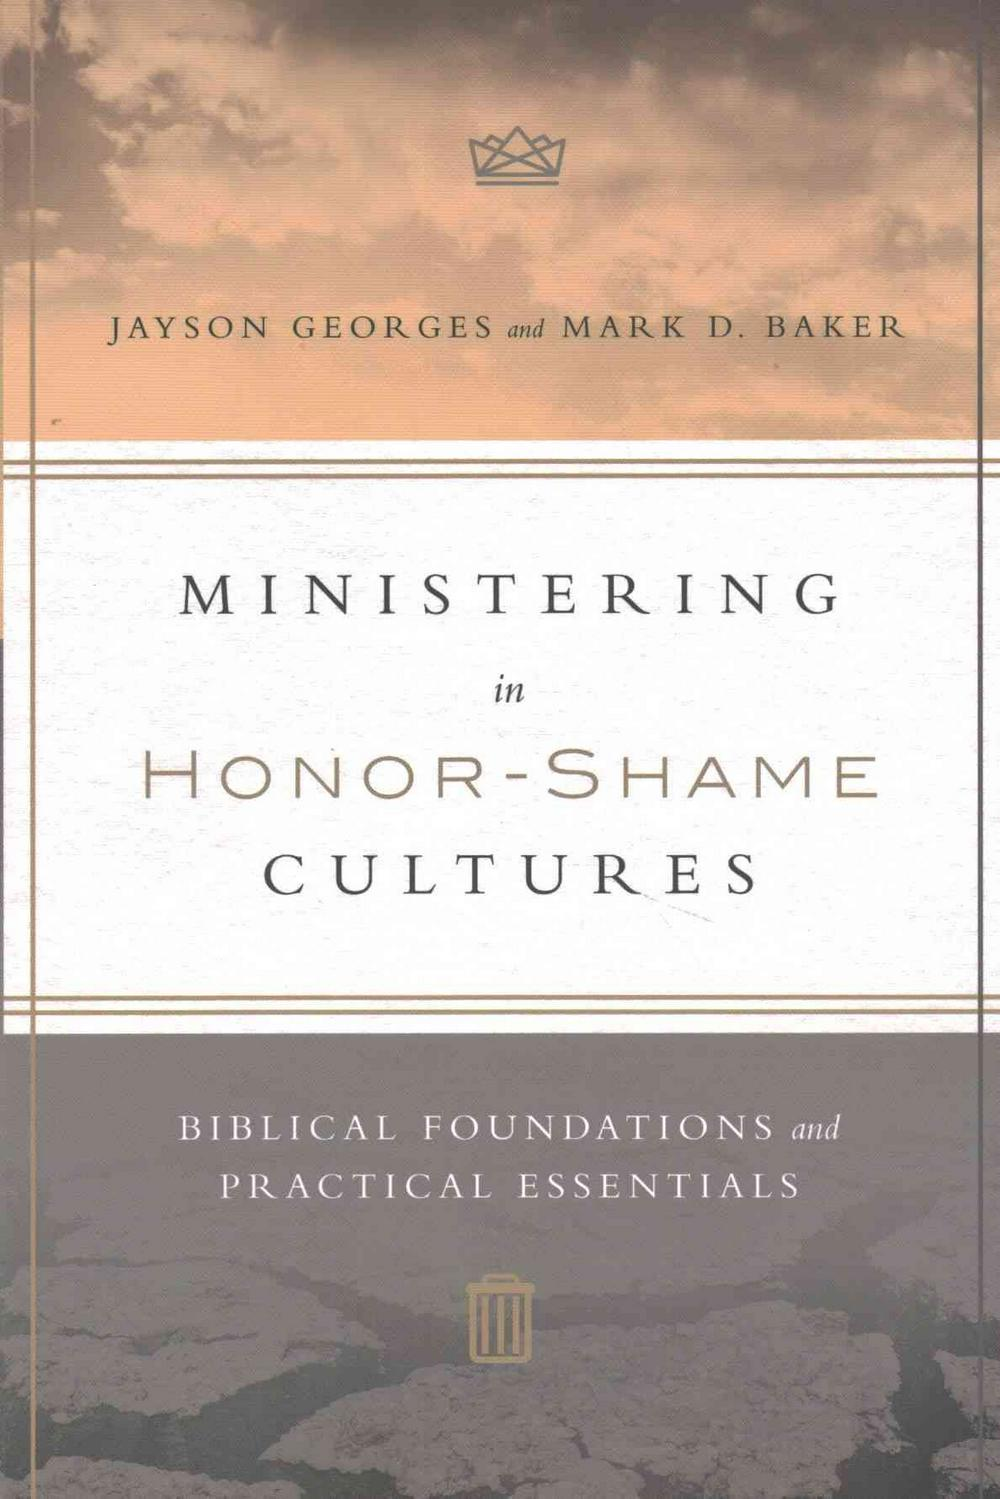 Ministering in Honor-Shame CulturesBiblical Foundations and Practical Essentials